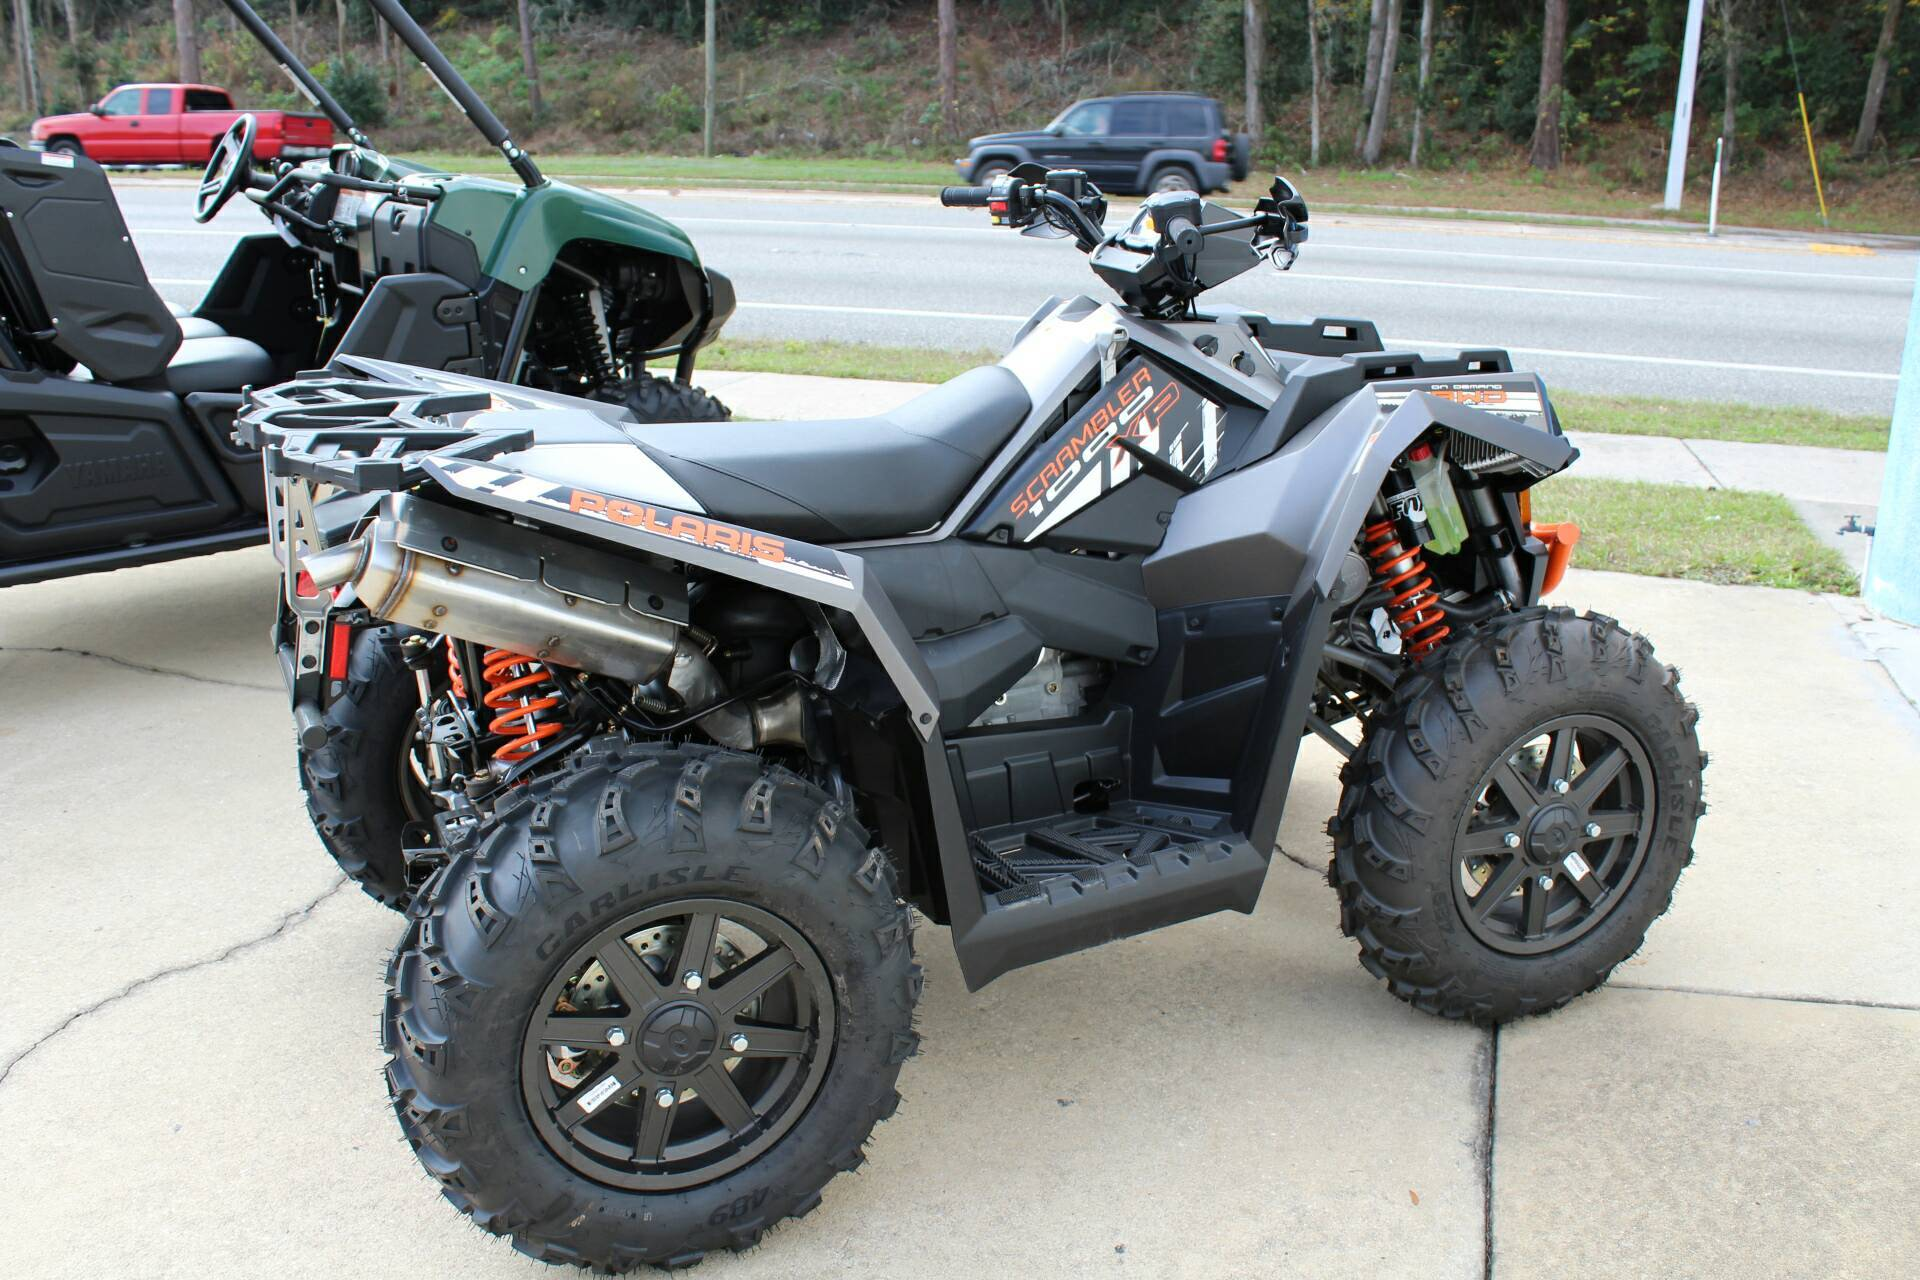 2017 Polaris Scrambler XP 1000 for sale 3952